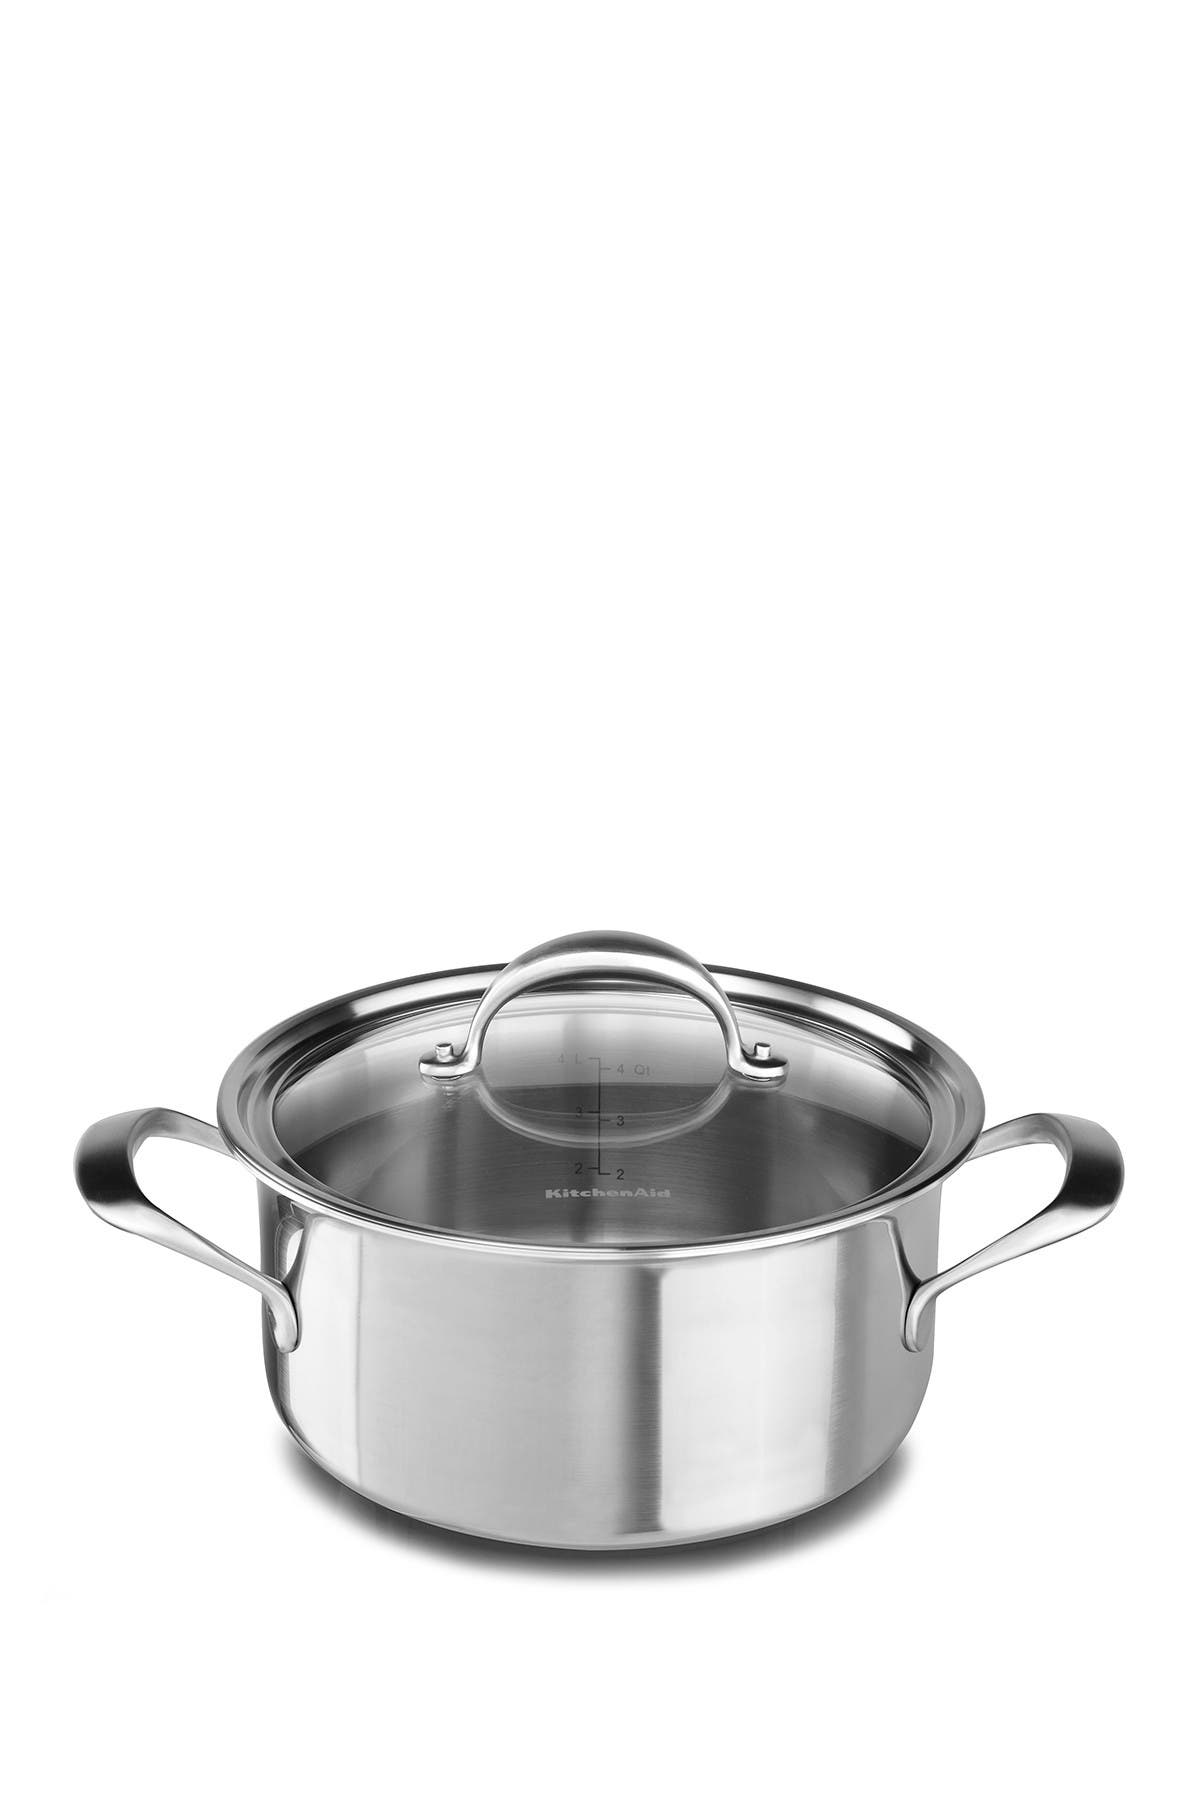 Image of KitchenAid Copper Core 6-Quart Low Casserole with Lid